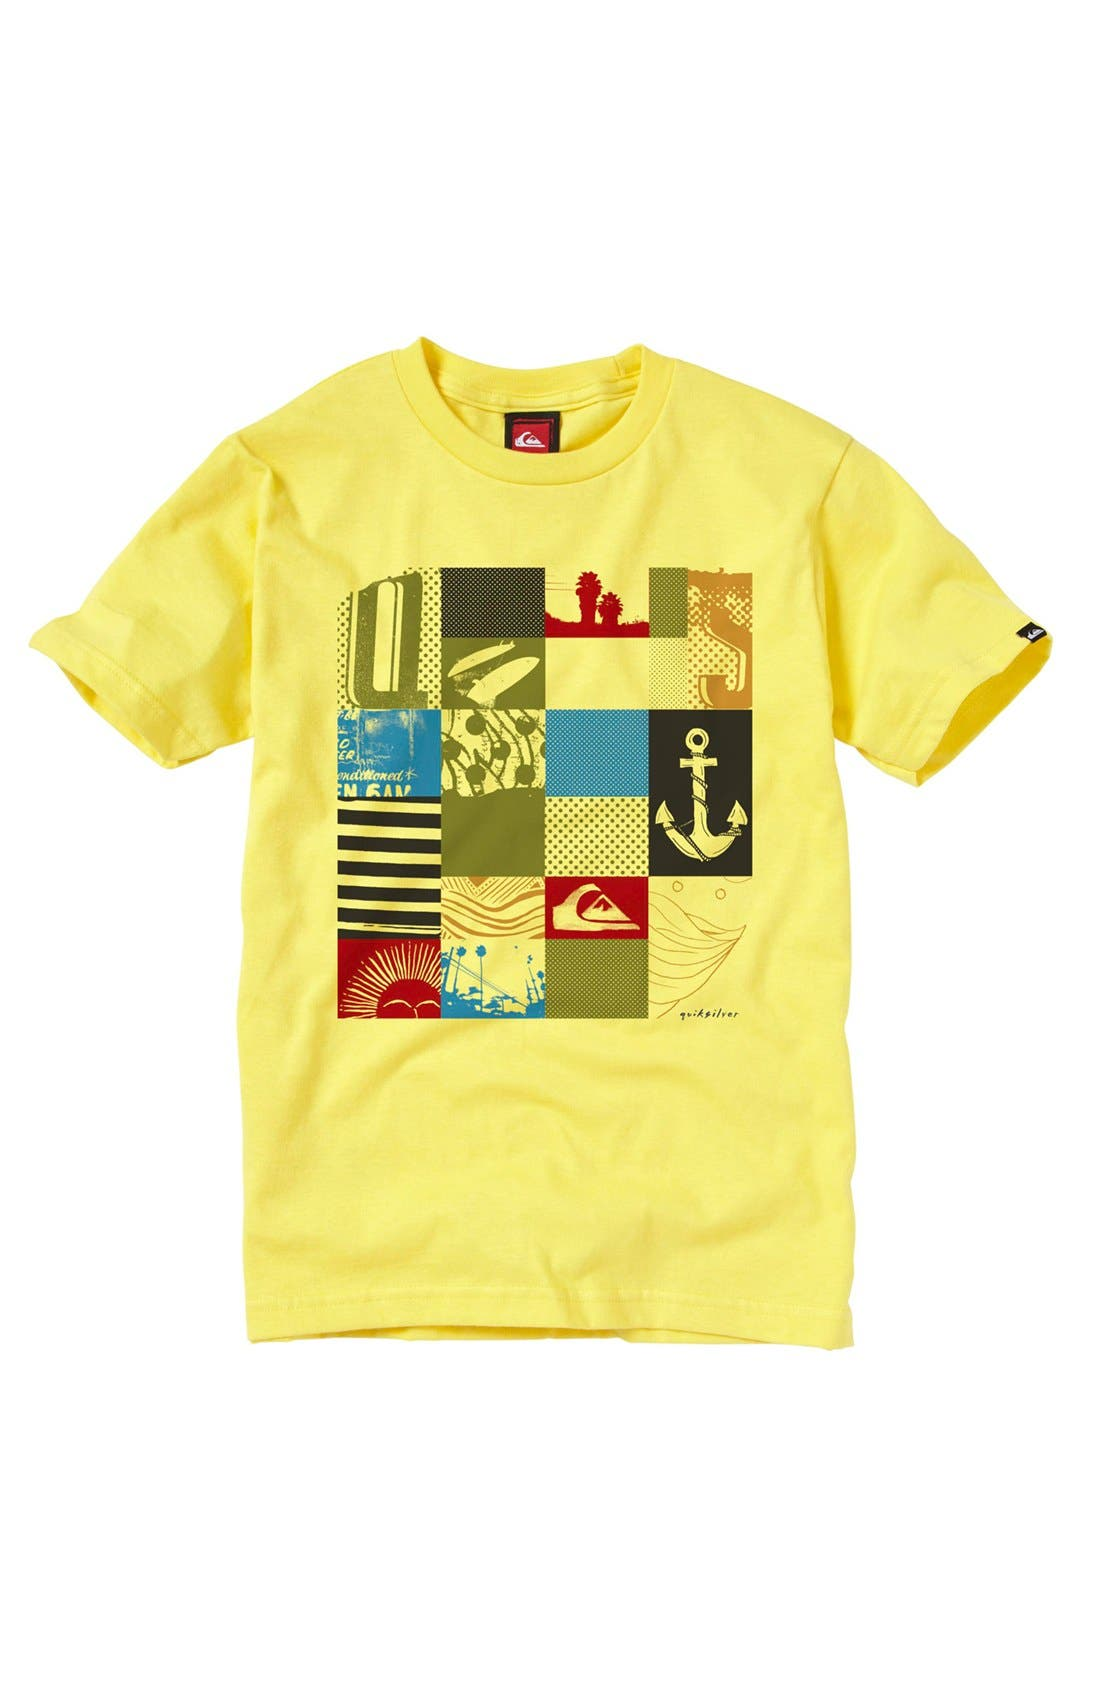 Main Image - Quiksilver 'Junk Drawer' T-Shirt (Big Boys)